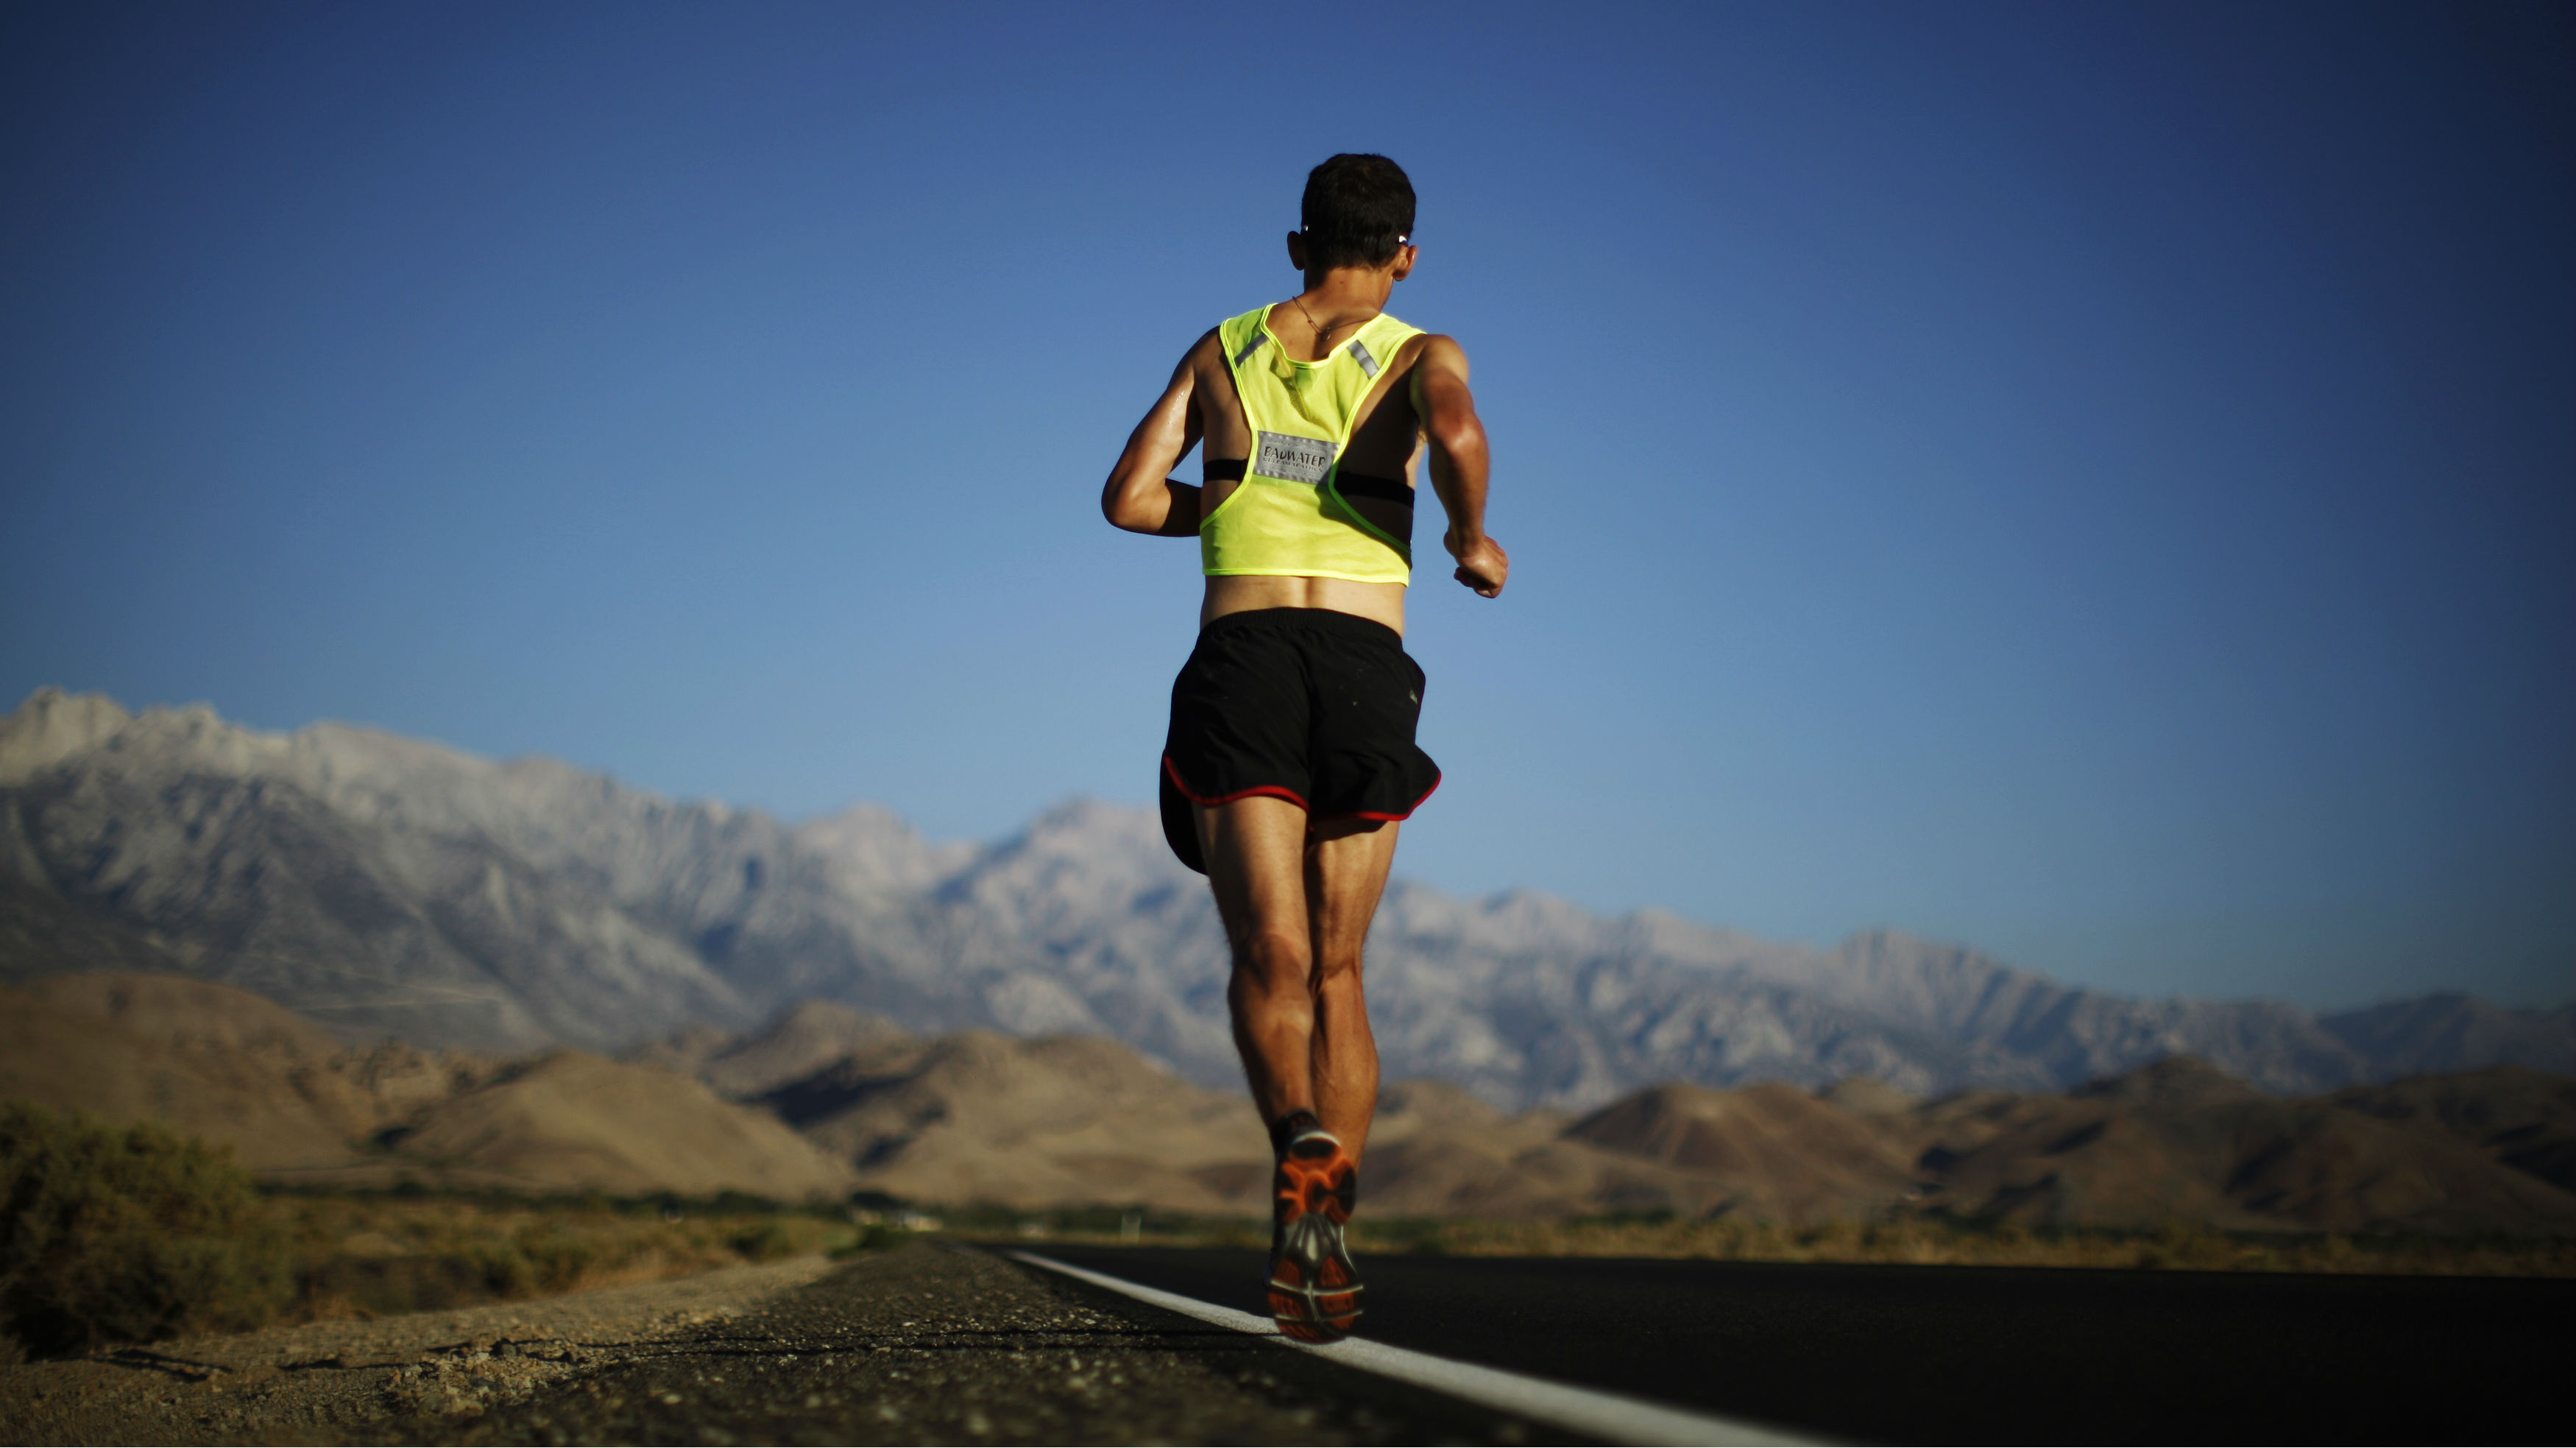 We could all learn a lot about success from ultramarathoners